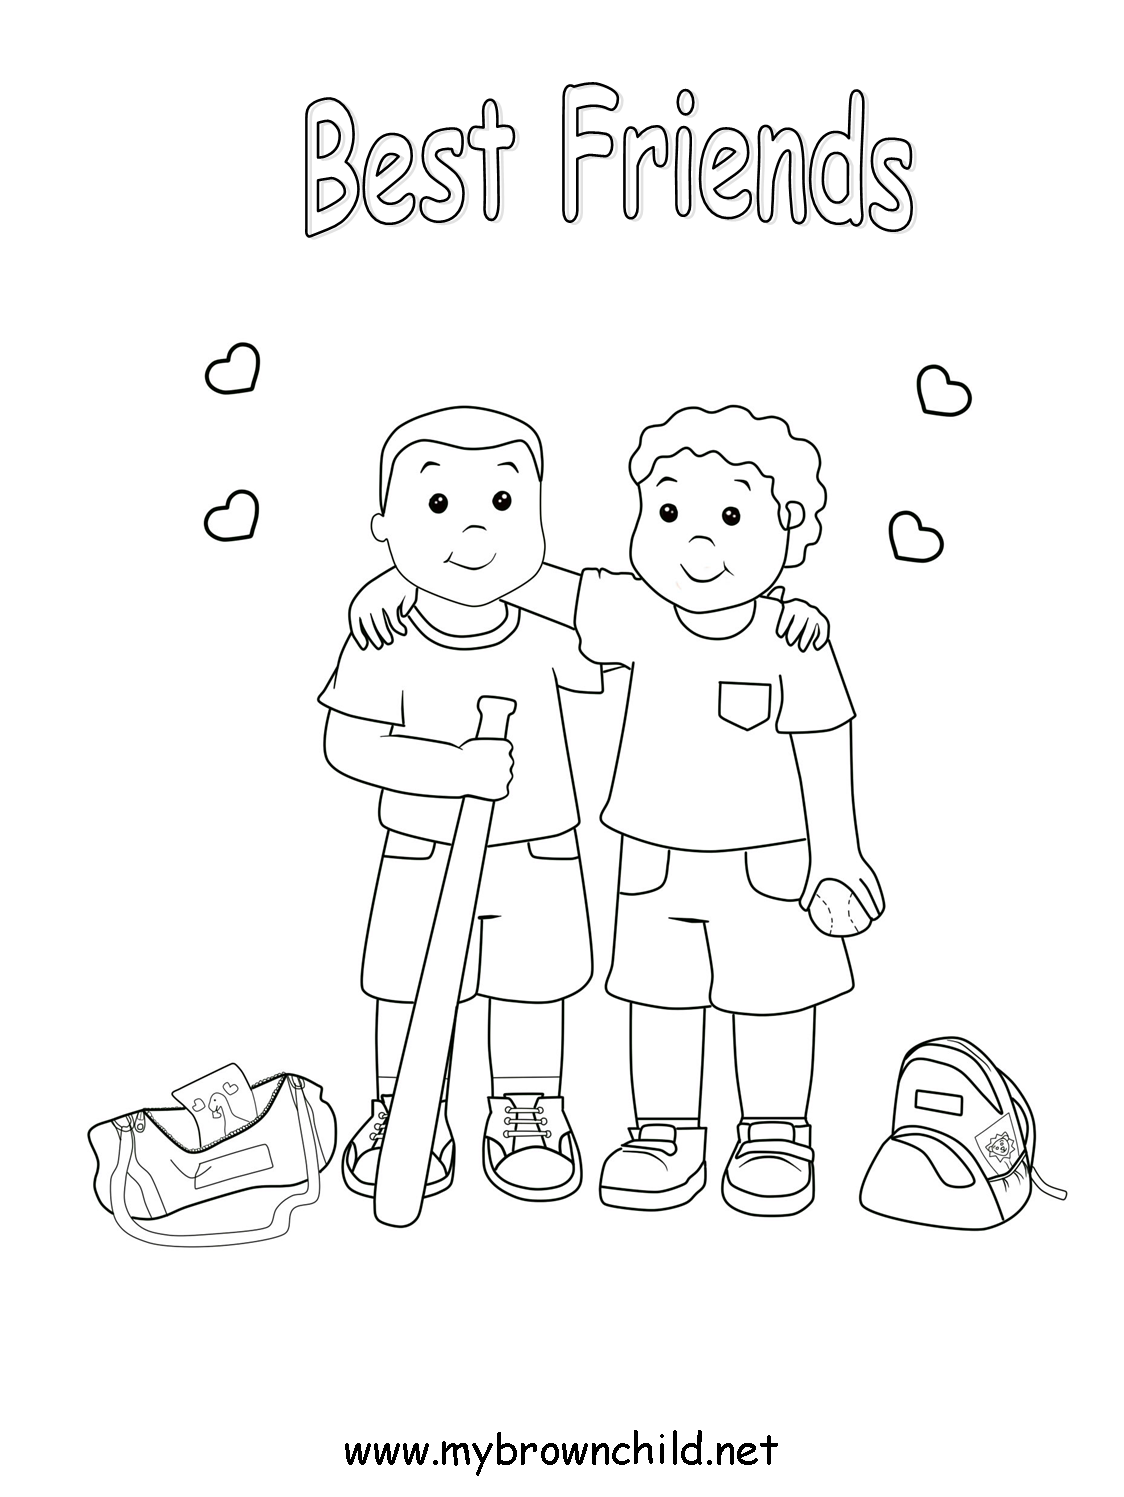 best friend coloring pages - Friendship Coloring Pages